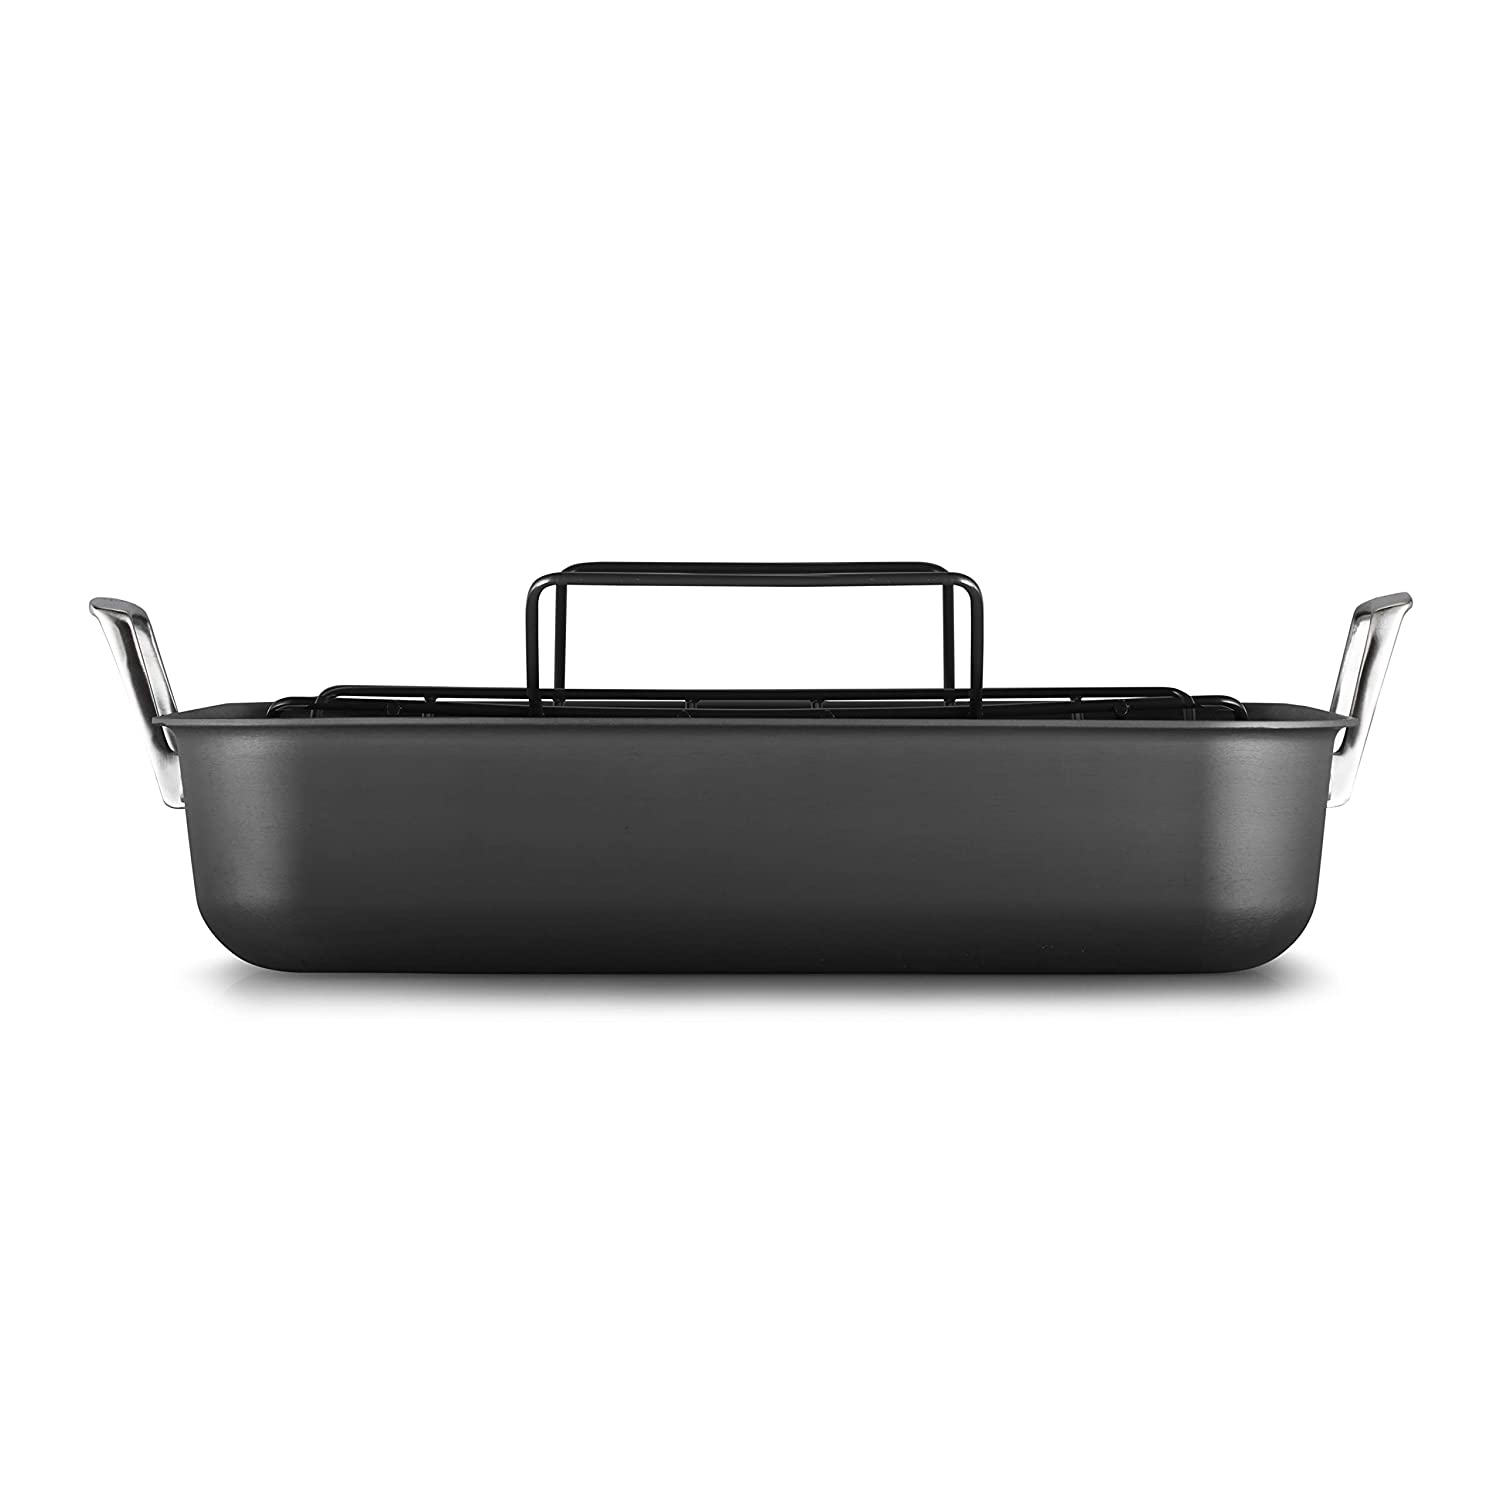 Calphalon 2029653 Premier Hard-Anodized Nonstick 16-Inch Roaster with Rack, Black